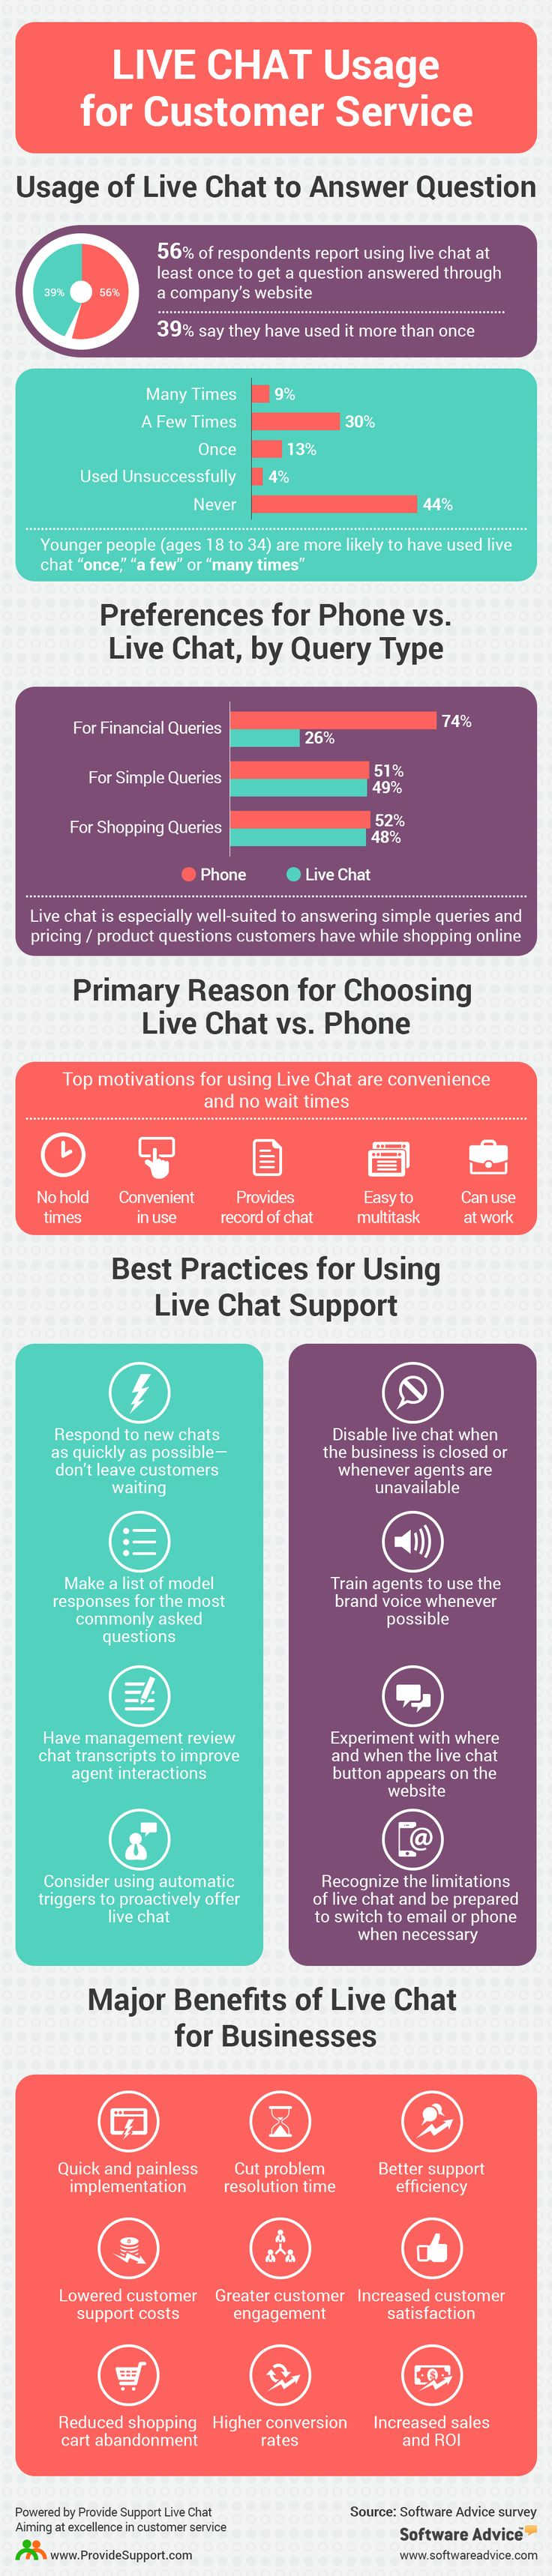 best images about customer service the social live chat usage for customer service